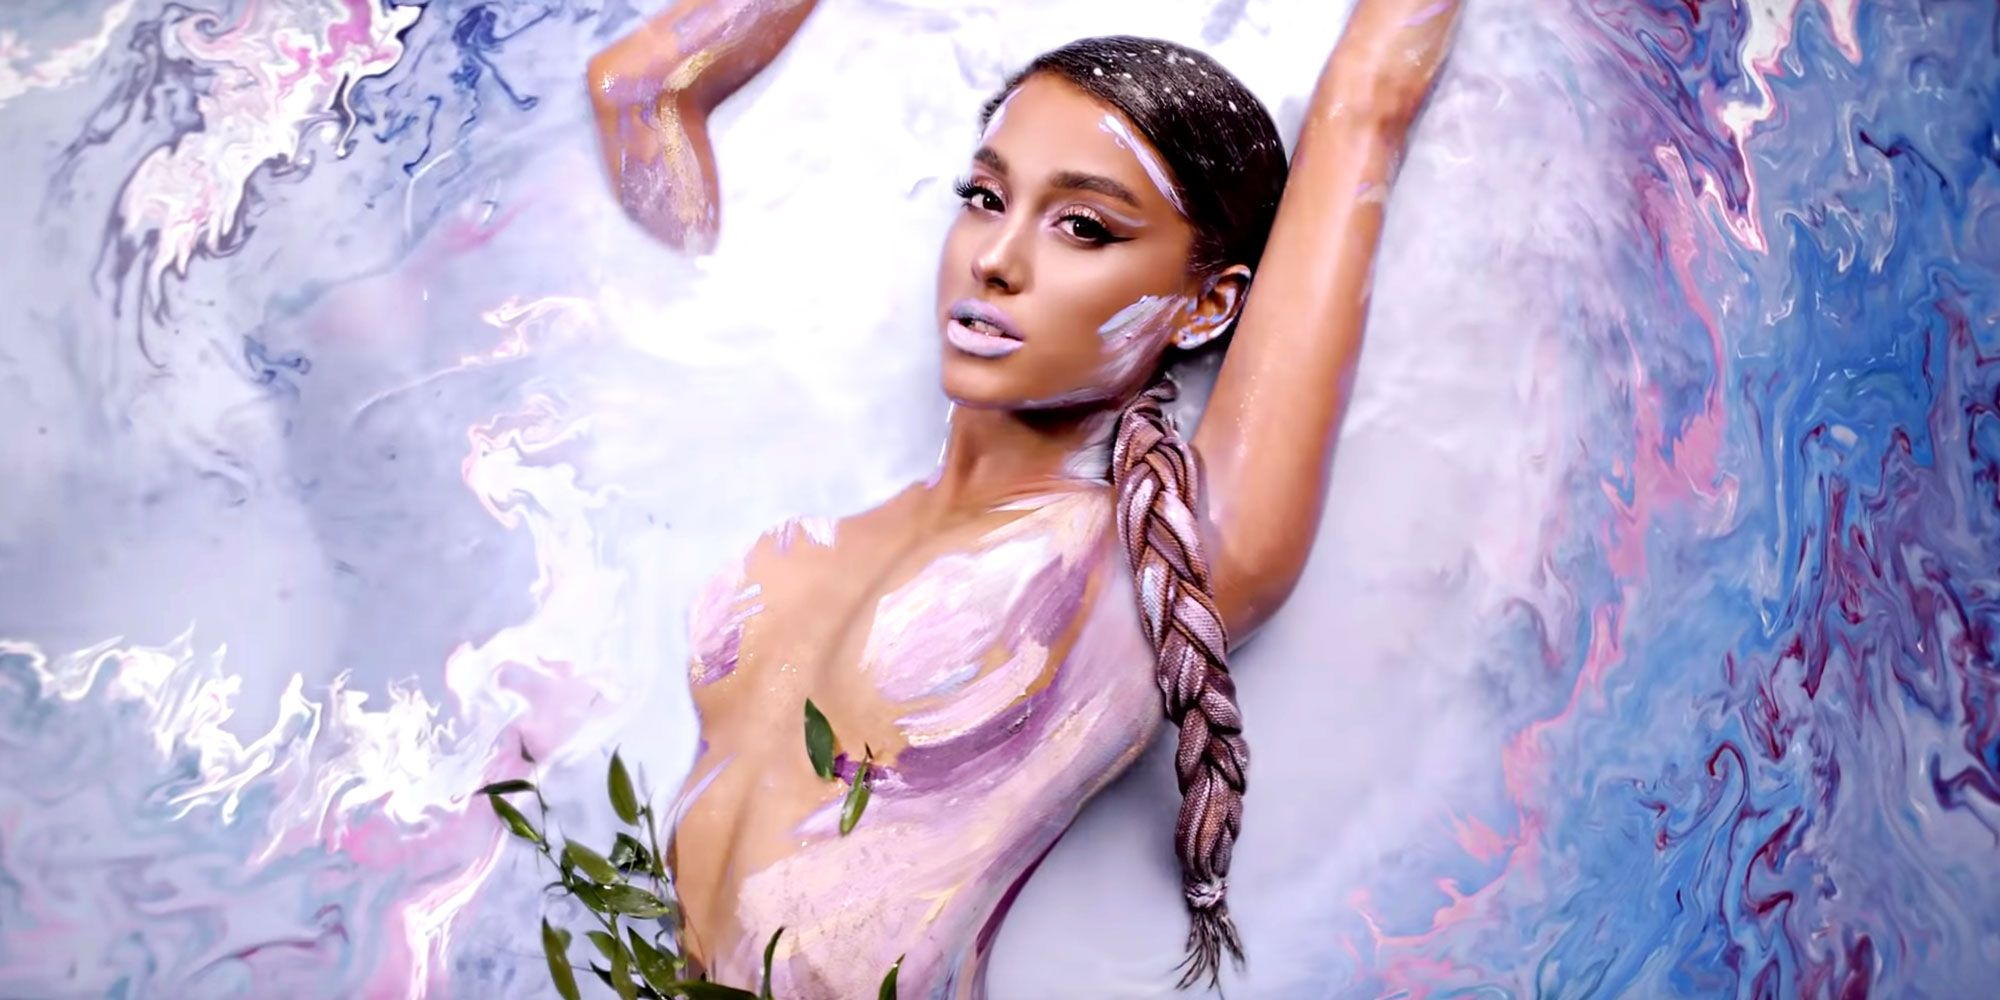 ariana-grande-god-is-a-woman